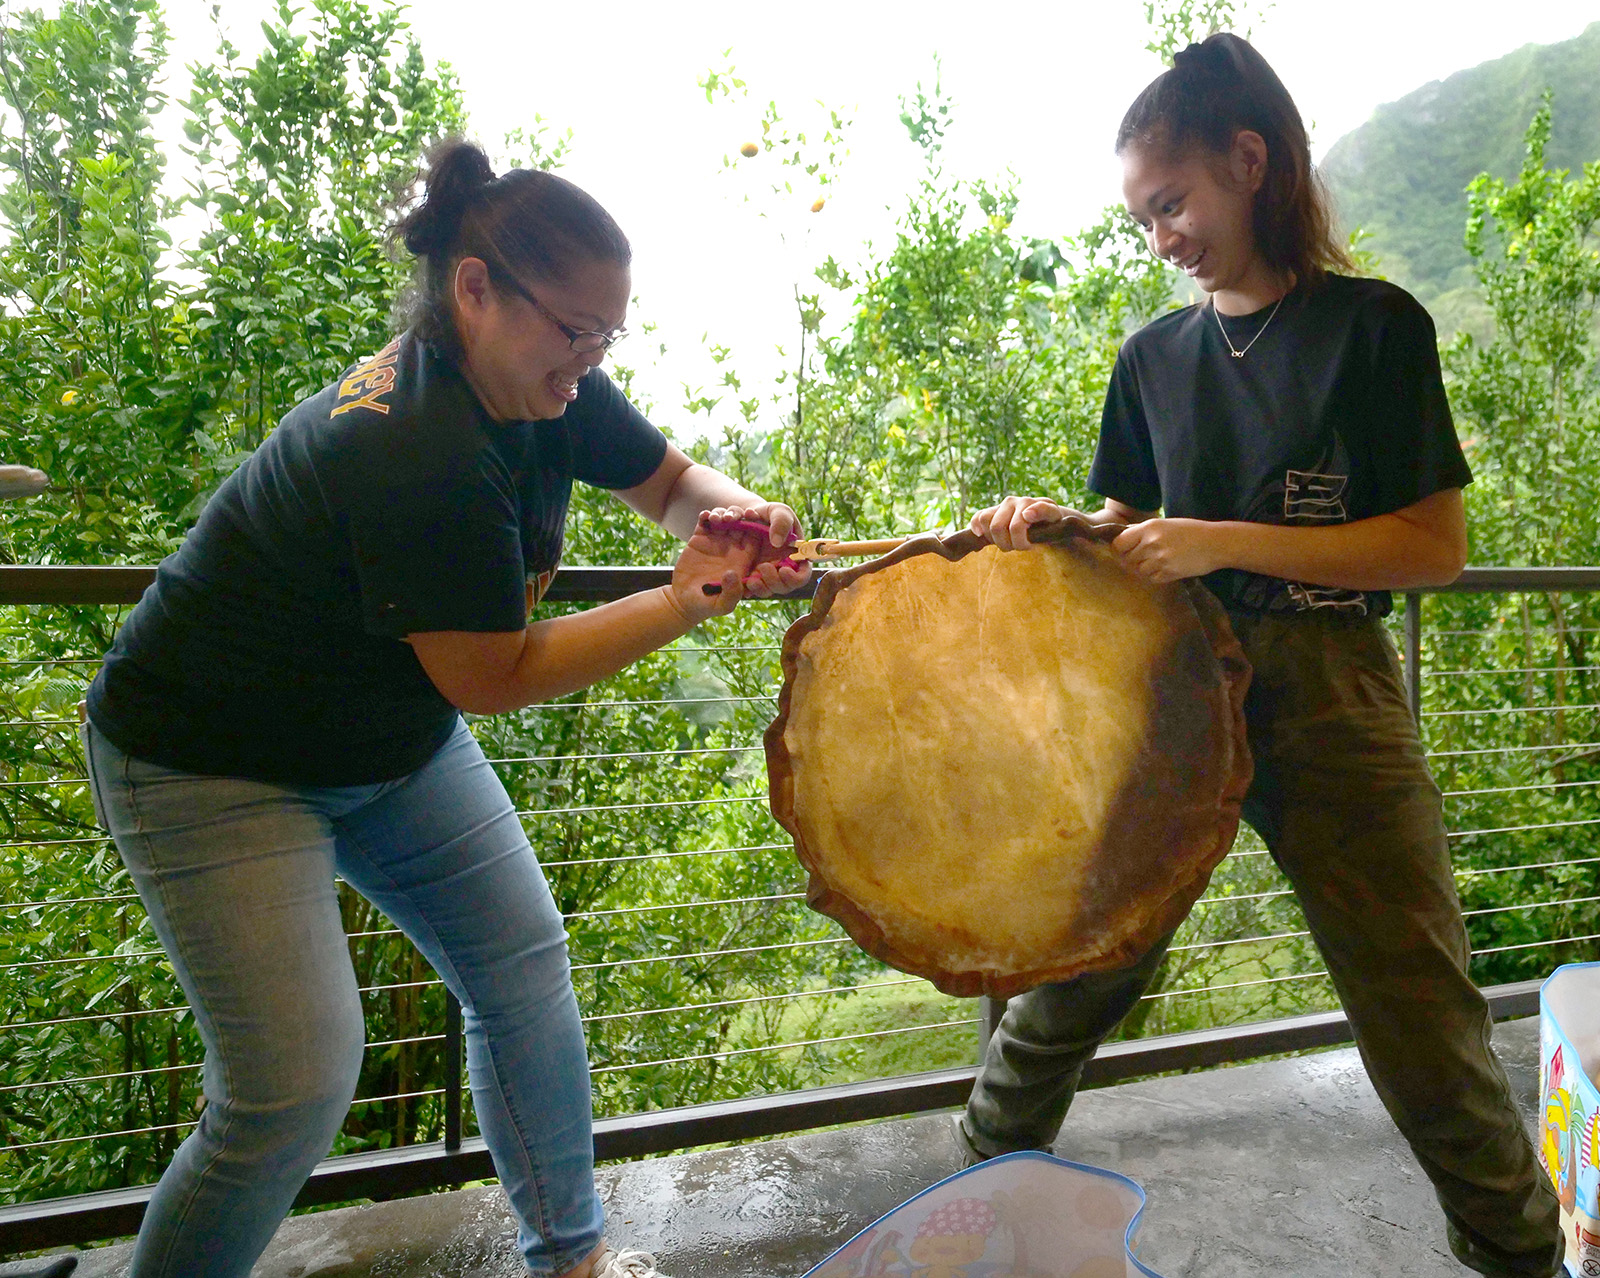 <p>Marilyn Asakura, left, and Nicole share a laugh as they struggle to pull wooden rods out from a cowhide in Kaneohe. The rods are used to help shape and secure the cowhides during the stretching process.</p>